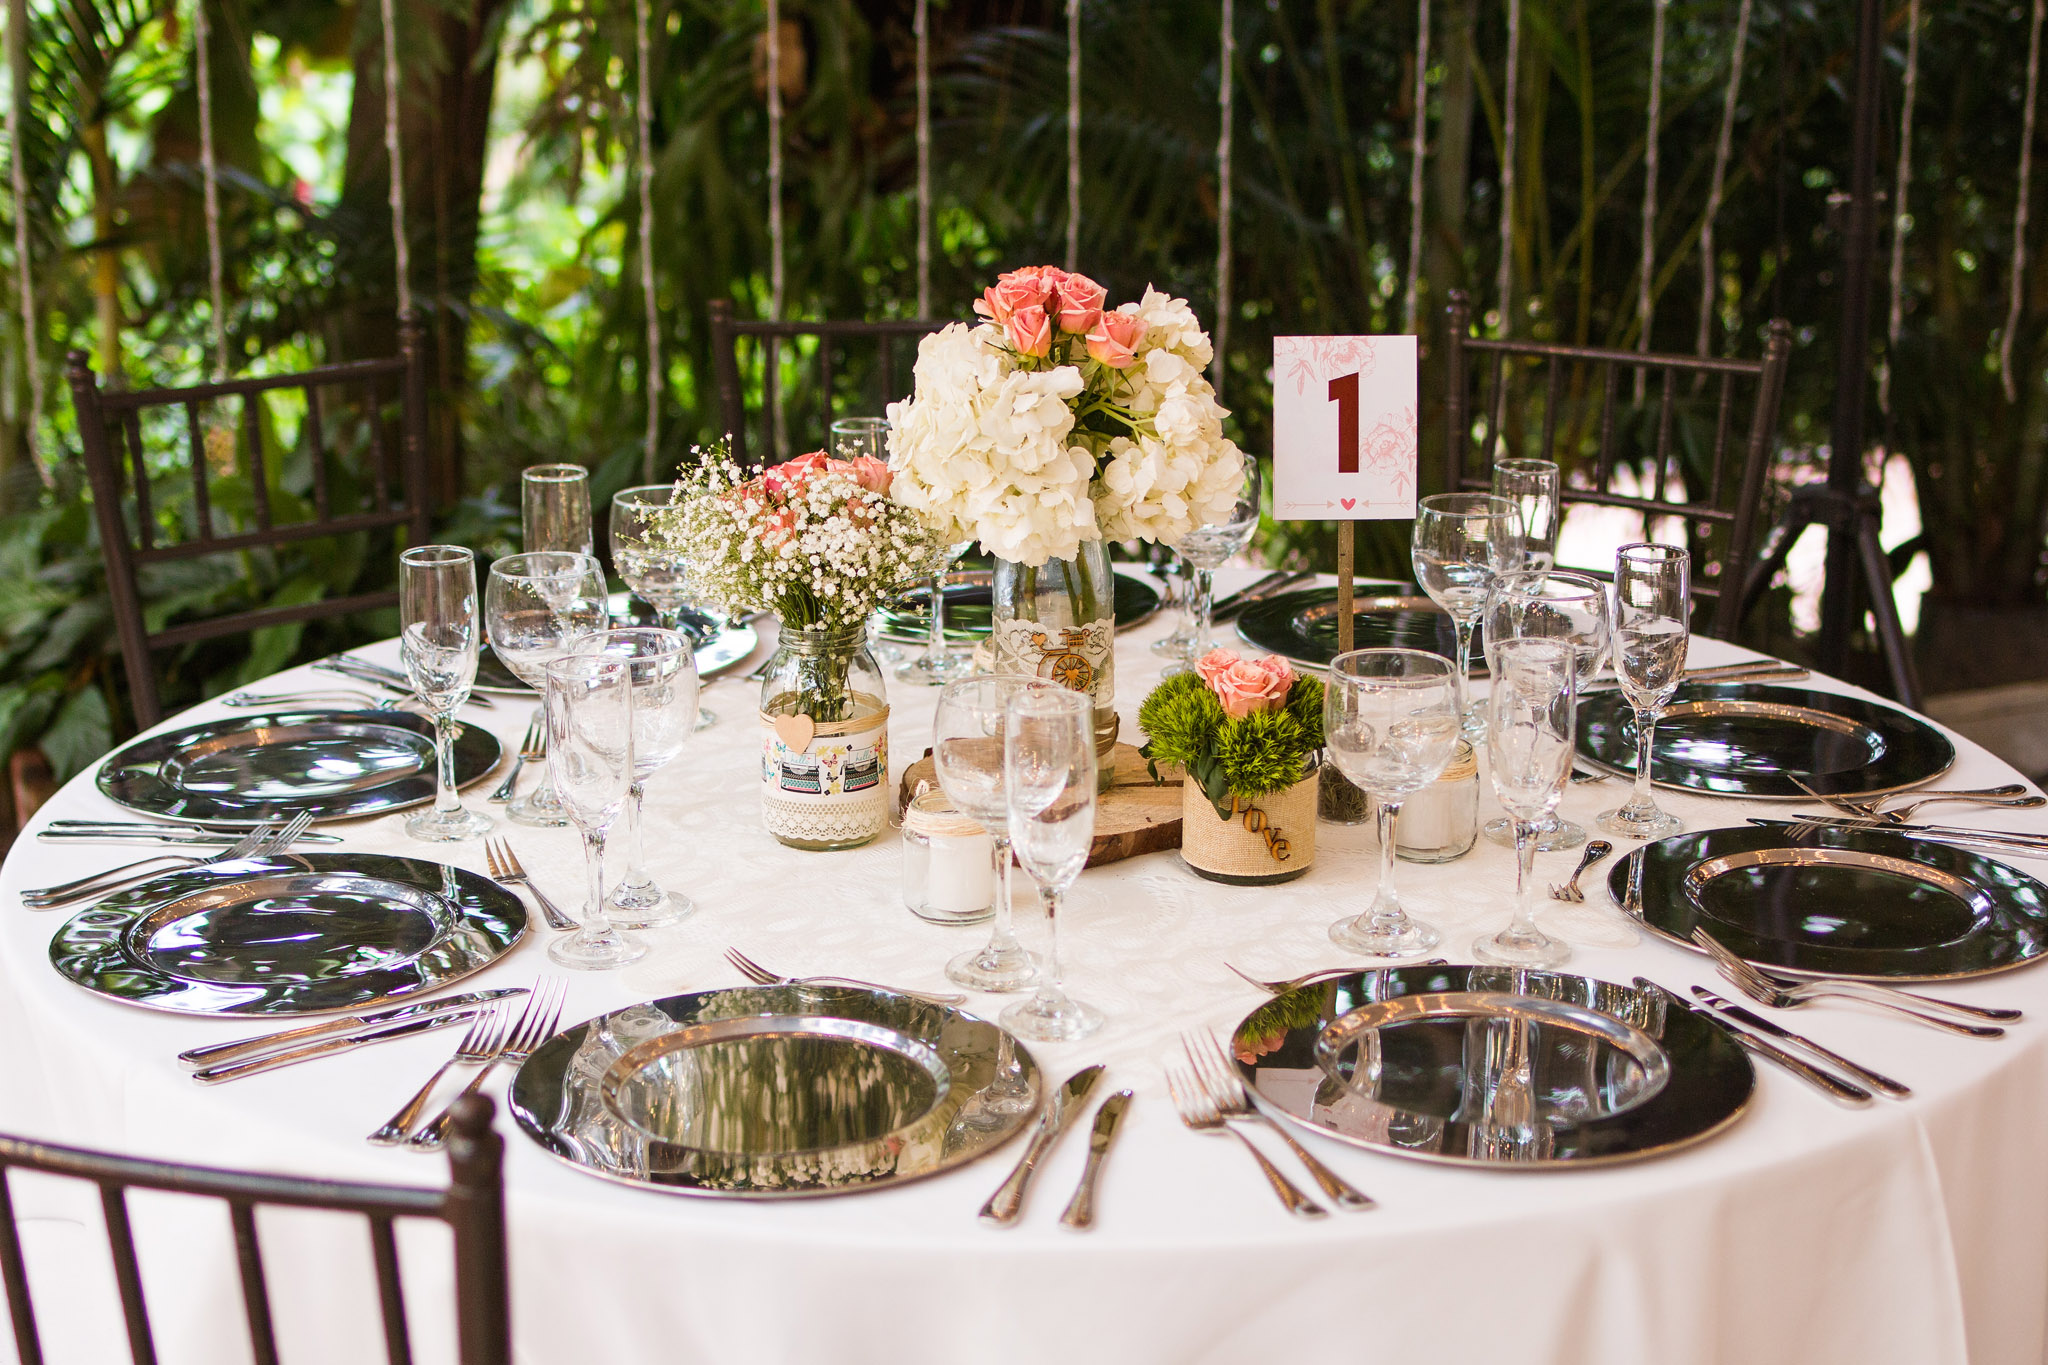 wedding-travellers-destination-wedding-photography-colombia-medellin-chuscalito-white-pink-rose-decoration